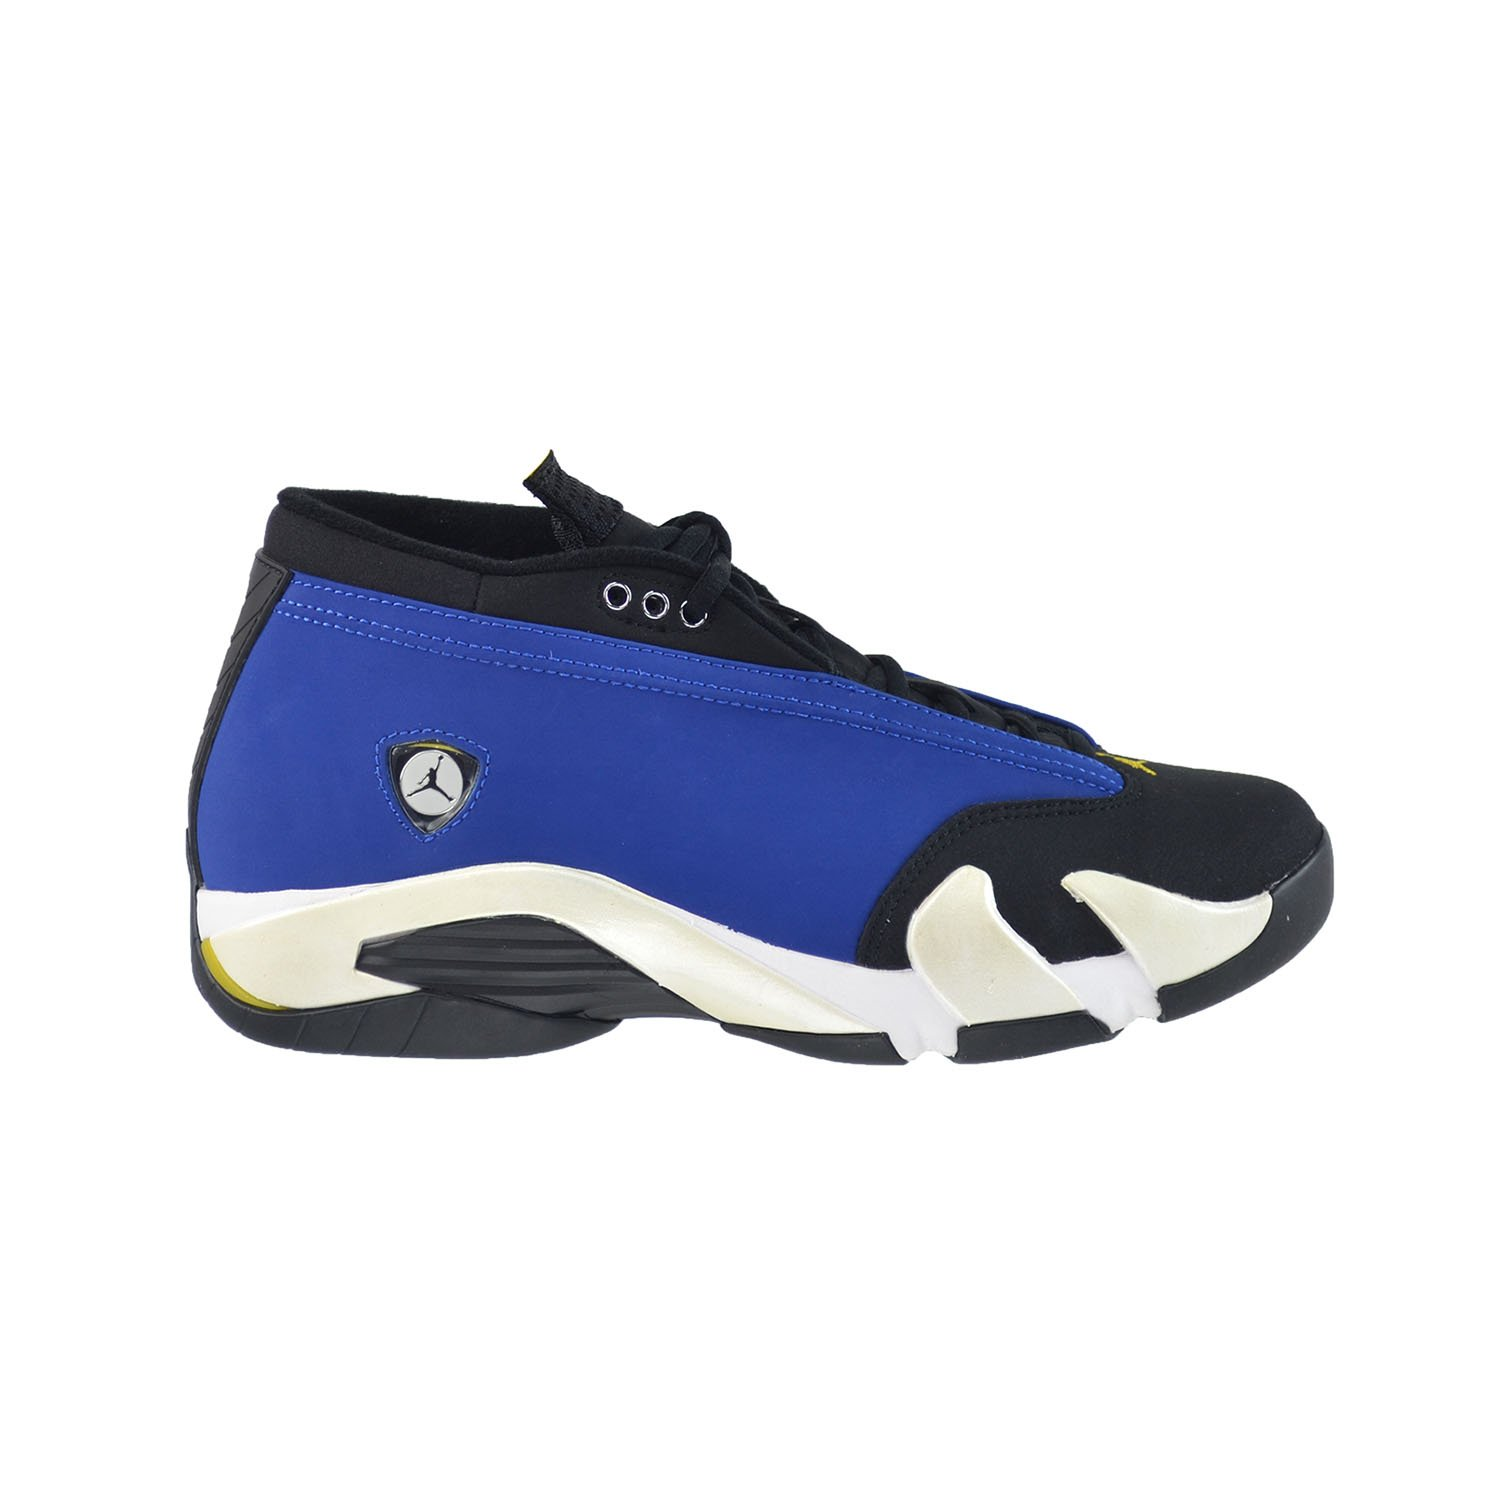 AIR JORDAN 14 RETRO LOW 'LANEY' - 807511-405 807511-405 807511-405 - Größe 8.5 43e49e